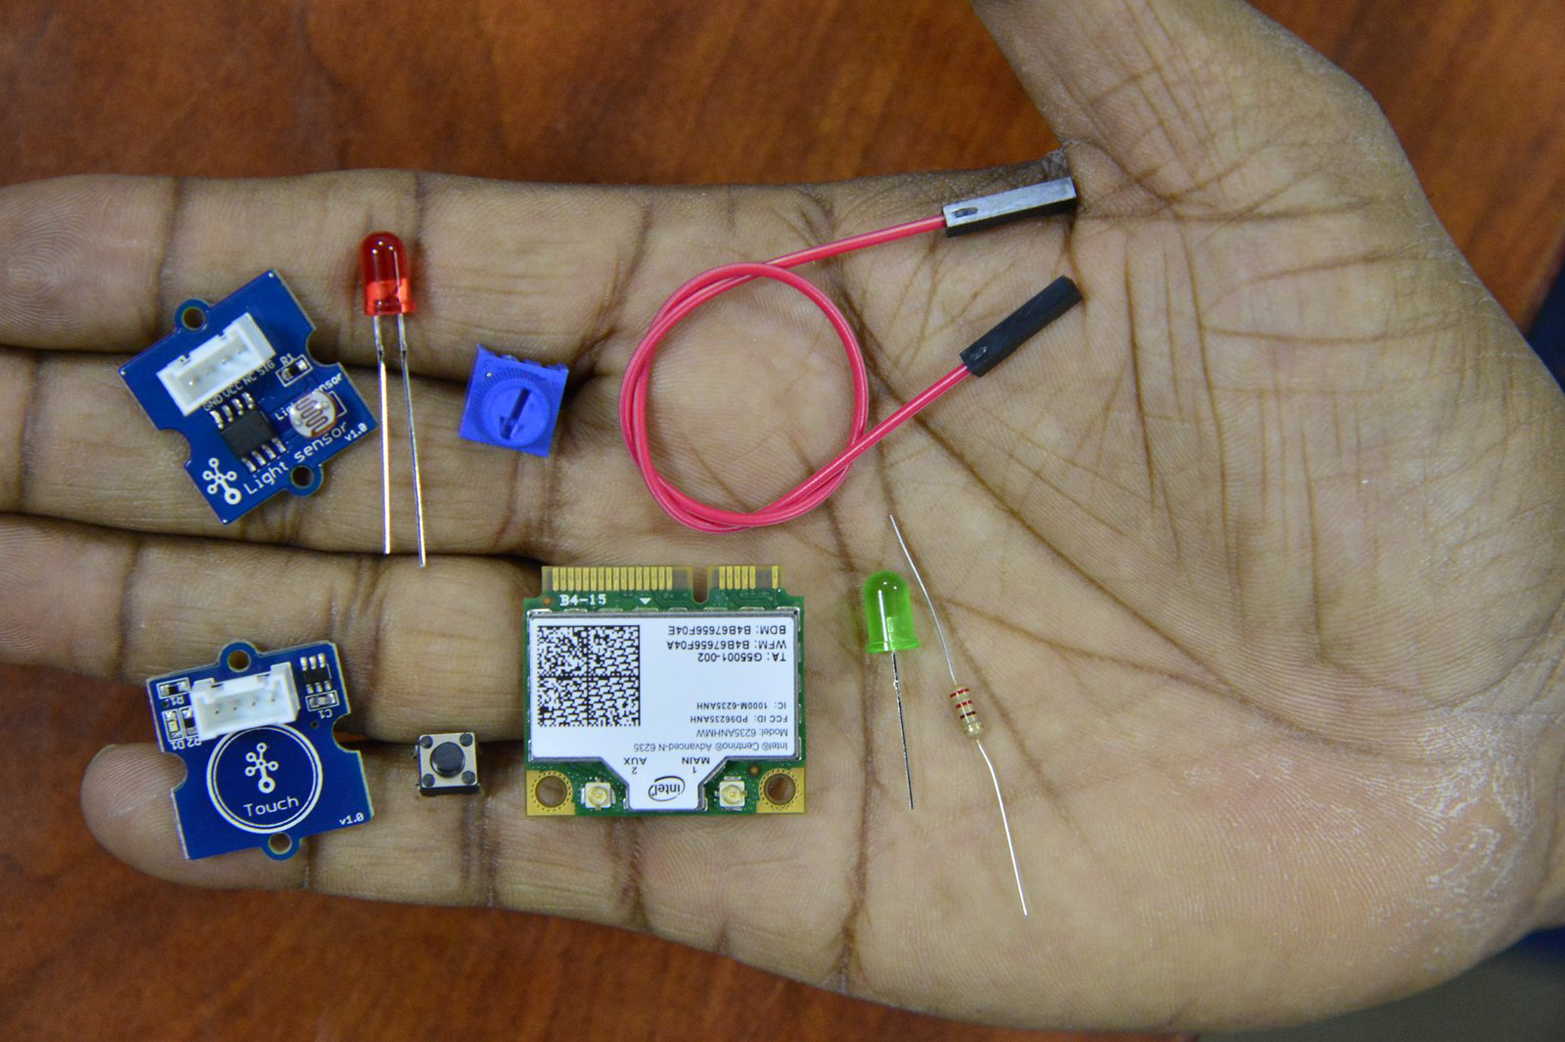 You'll need a variety of components to make your electrical prototypes (photo courtesy of Flickr user Intel Free Press)